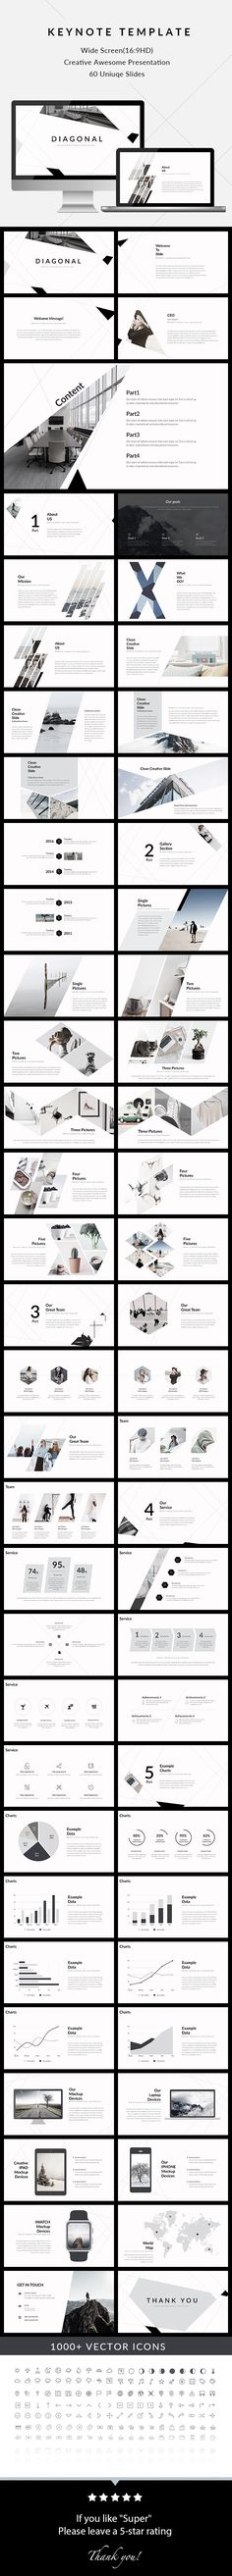 Diagonal - Clean & Creative Keynote Template  #most #chart • Download ➝ https://graphicriver.net/item/diagonal-clean-creative-keynote-template/18027904?ref=pxcr